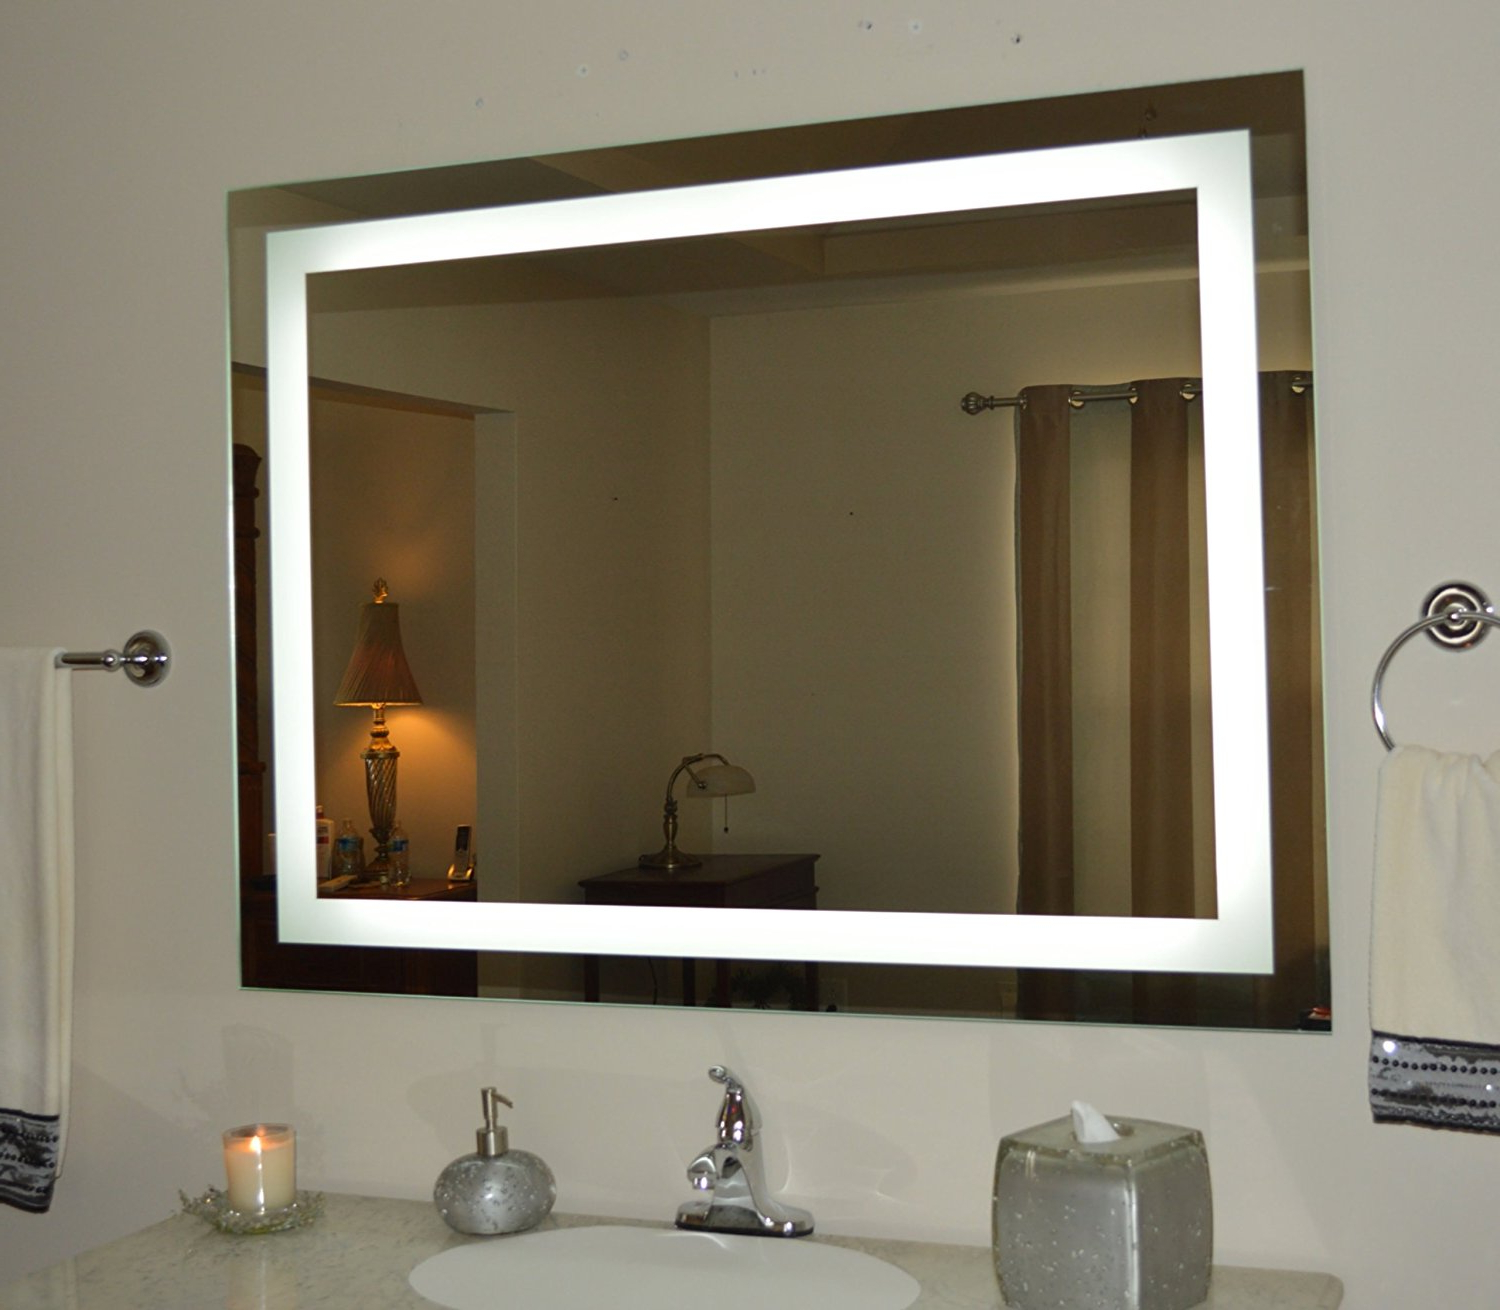 Lighted Vanity Mirror Wall — Awesome House Lighting : Perfect Within Favorite Lighted Vanity Wall Mirrors (View 6 of 20)